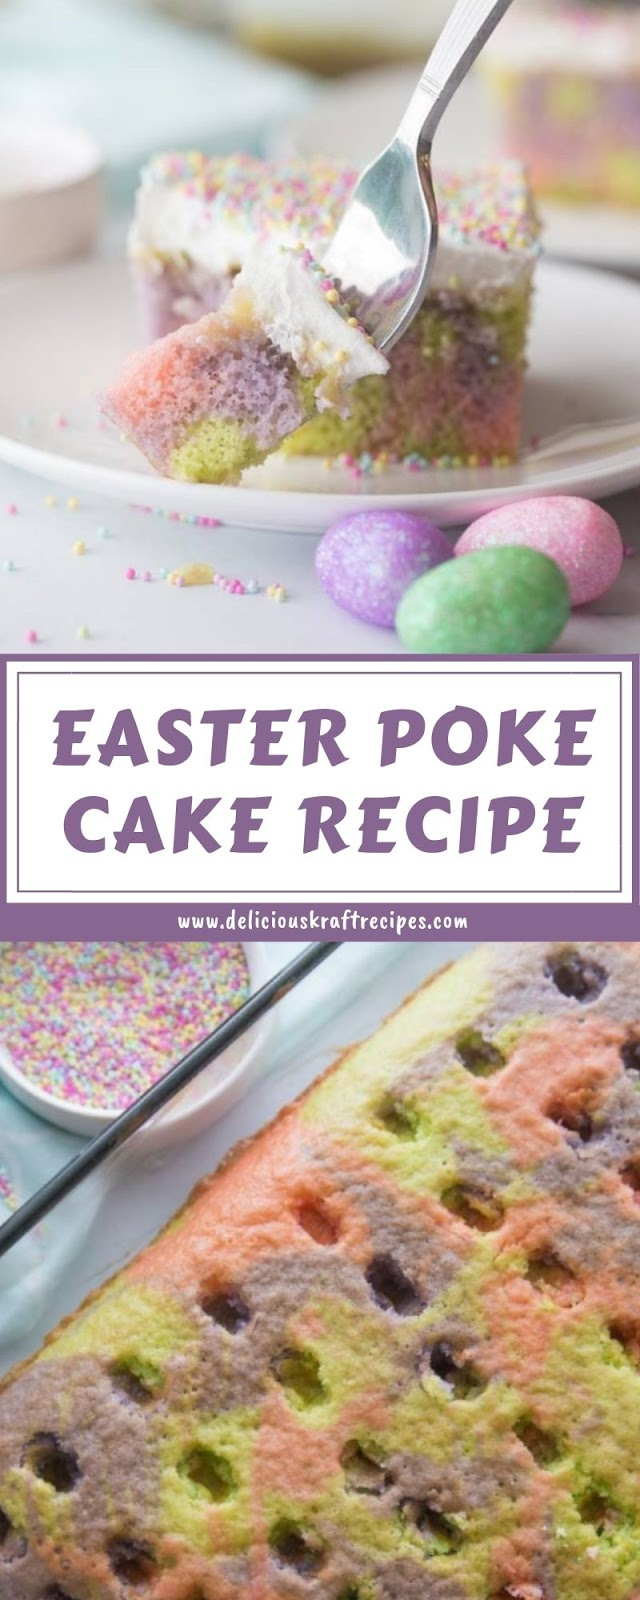 EASTER POKE CAKE RECIPE